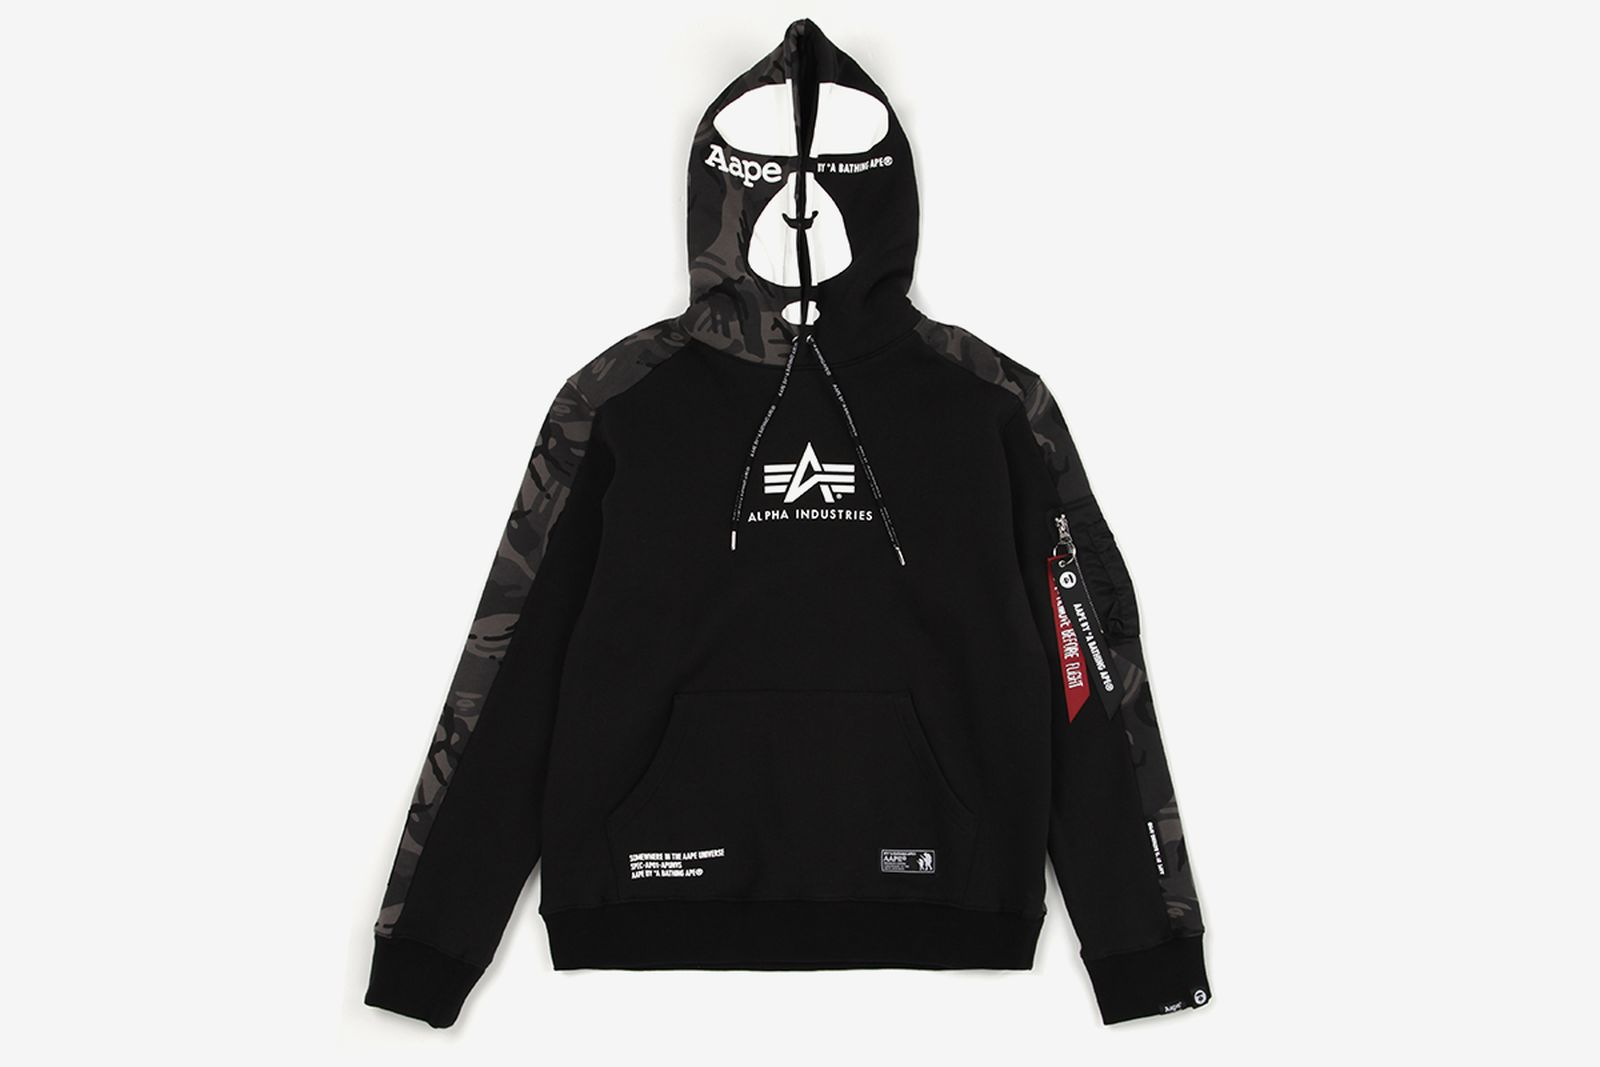 aape-alpha-industries-fw19-1-08